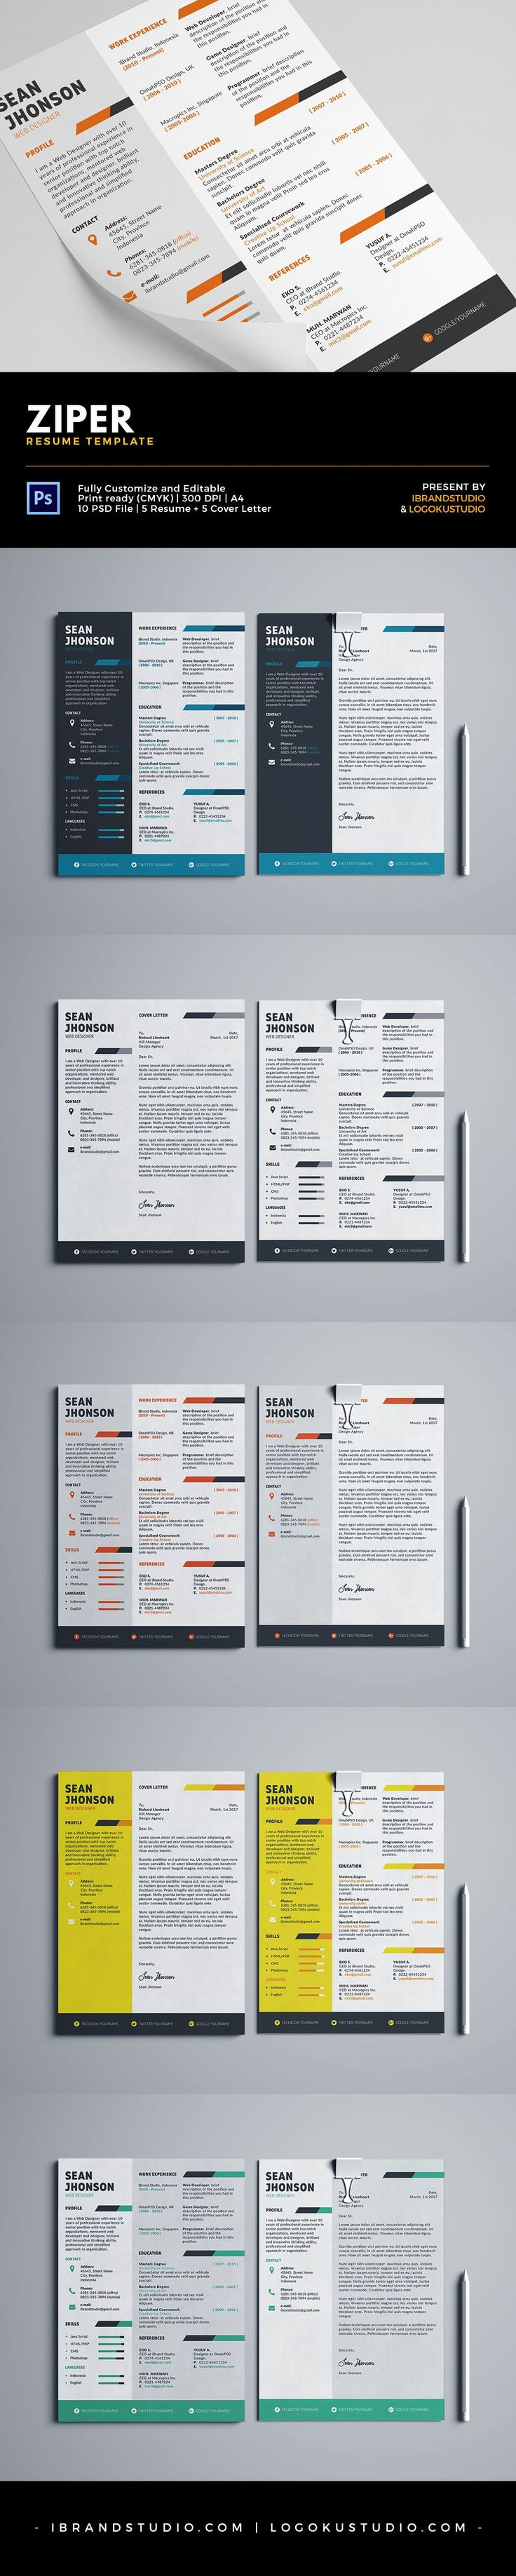 Cv Templates Pdf%0A Free Ziper Resume Template and Cover Letter    Styles  PSD